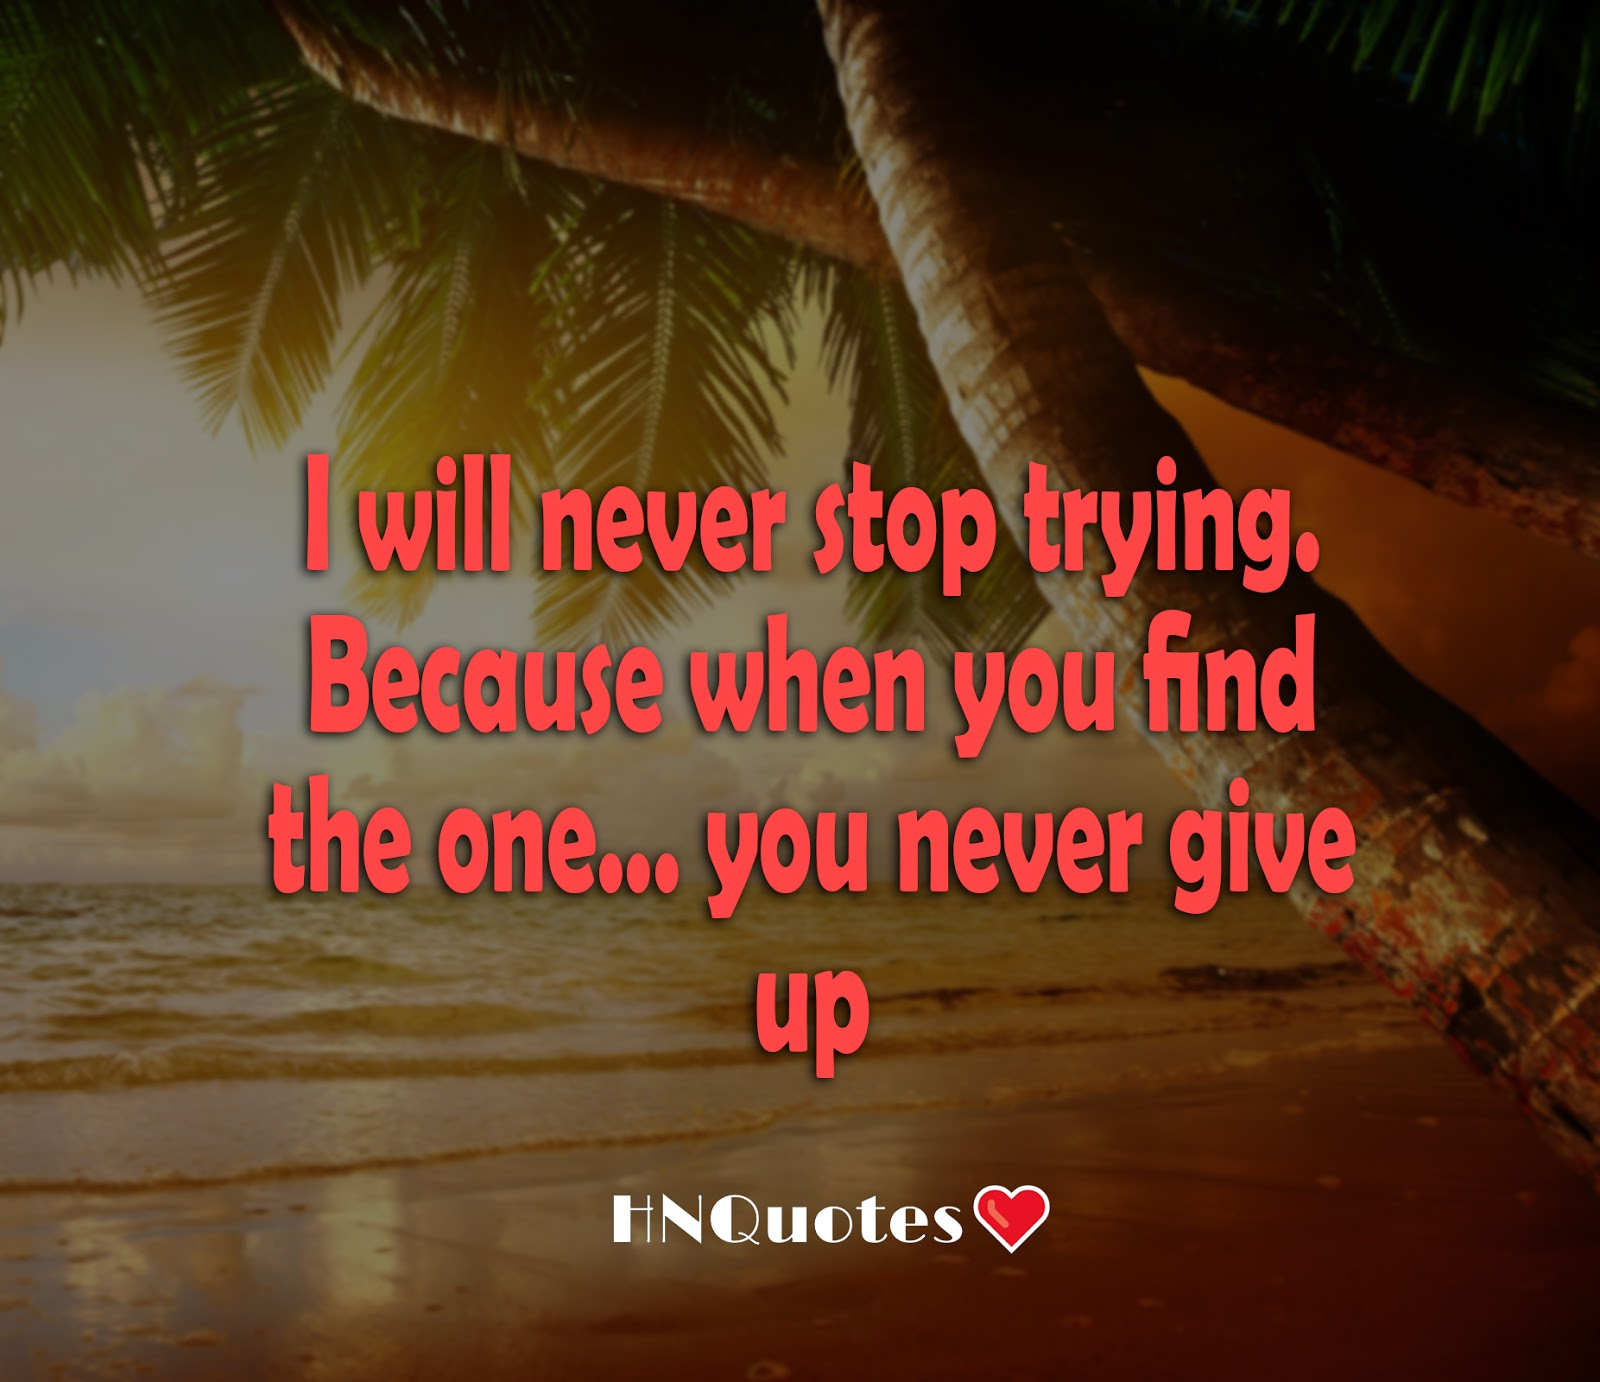 Romantic-Quotes-Beautiful-Sayings-about-Love-Quotes-for-Couples-18-[HNQuotes]